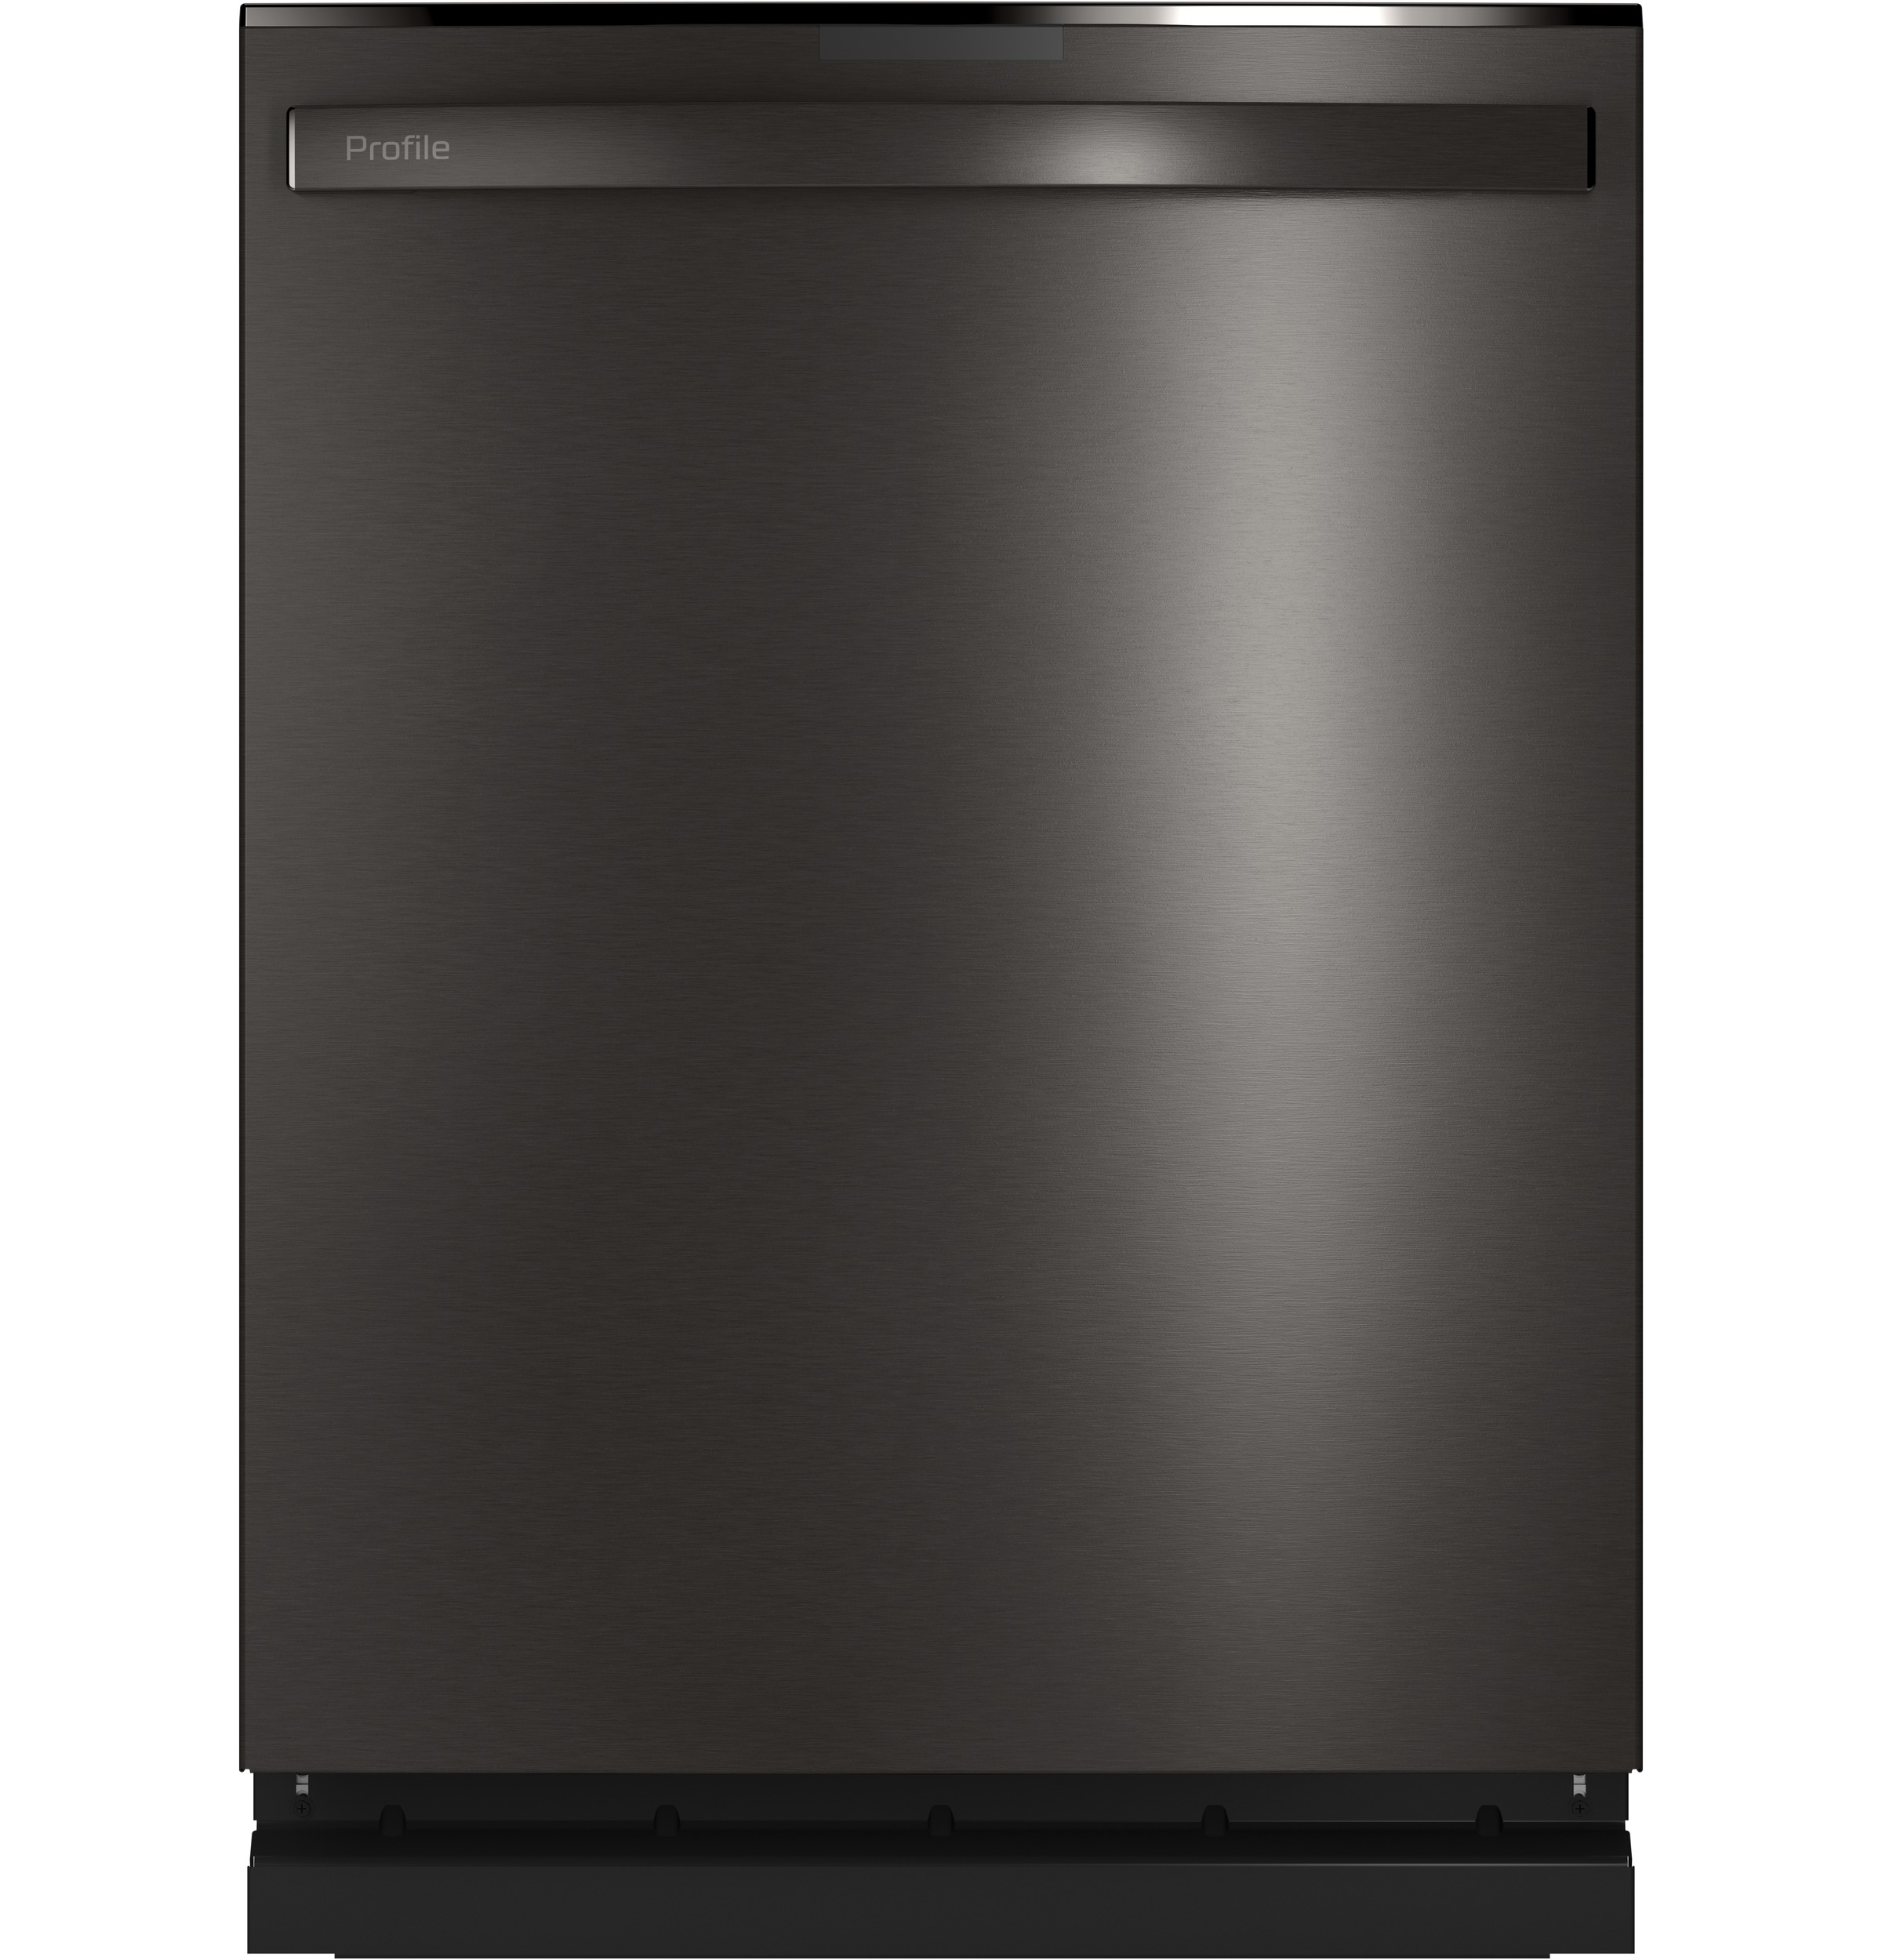 Model: PDT775SBNTS   GE Profile GE Profile™ Top Control with Stainless Steel Interior Dishwasher with Sanitize Cycle & Twin Turbo Dry Boost